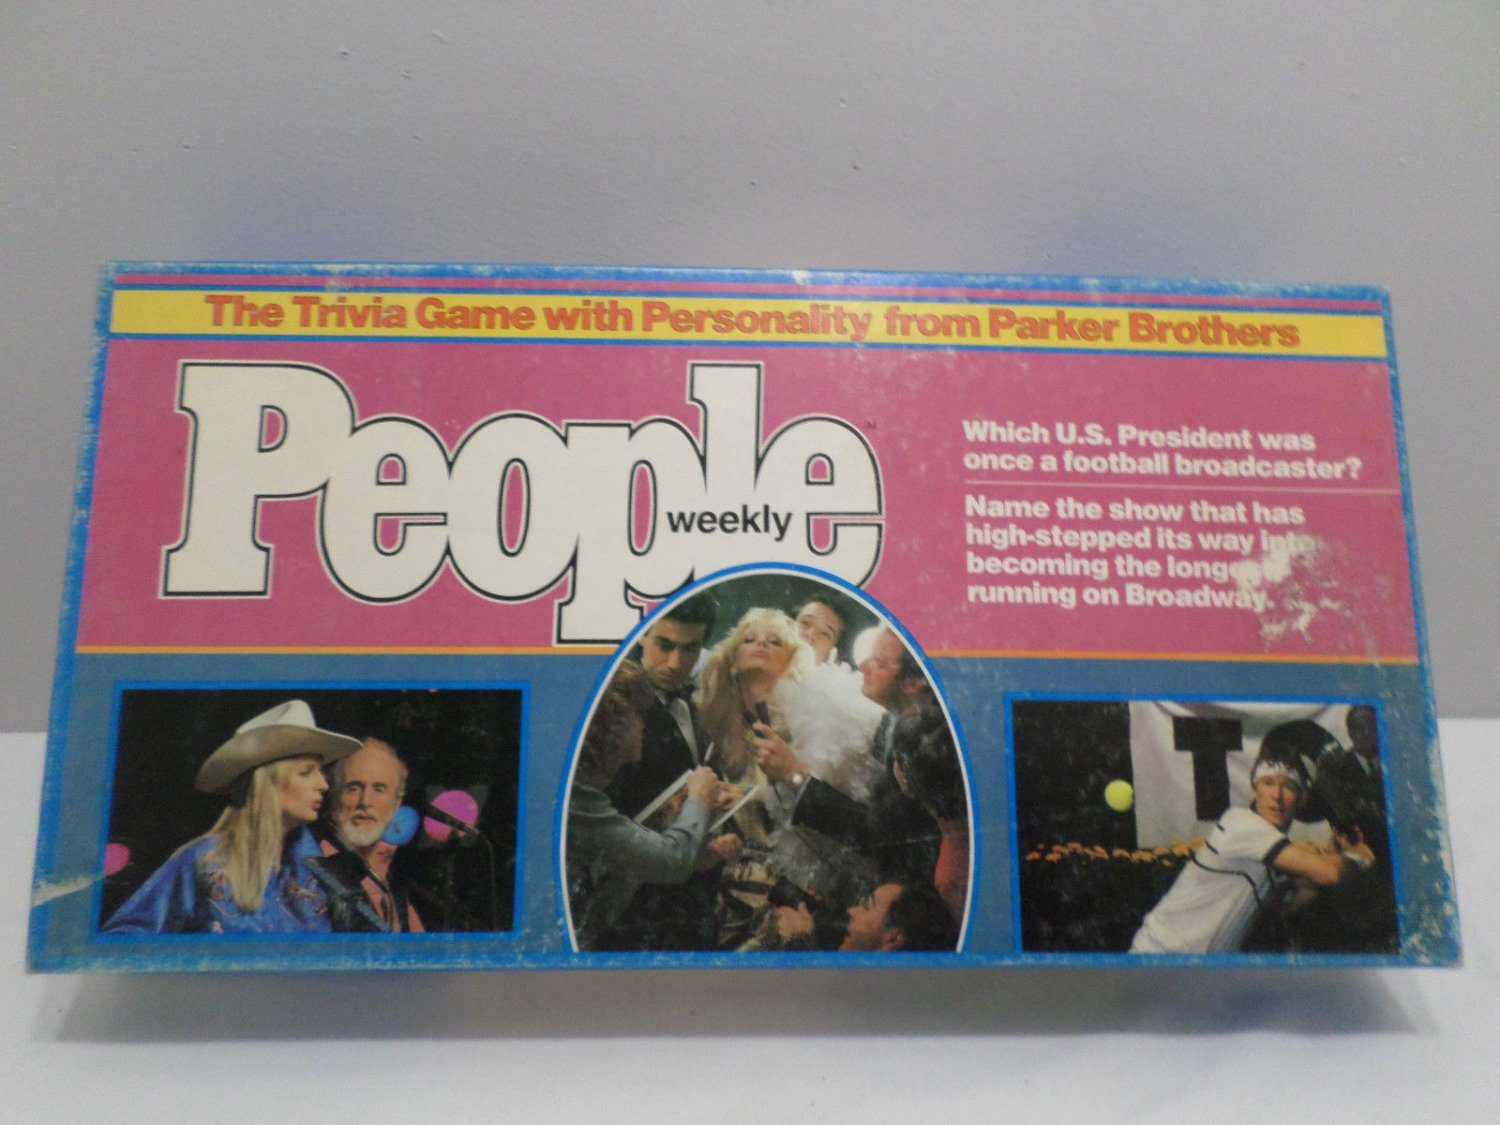 1984 Trivia Game People Weekly by Parker Brothers 2 to 7 Players new